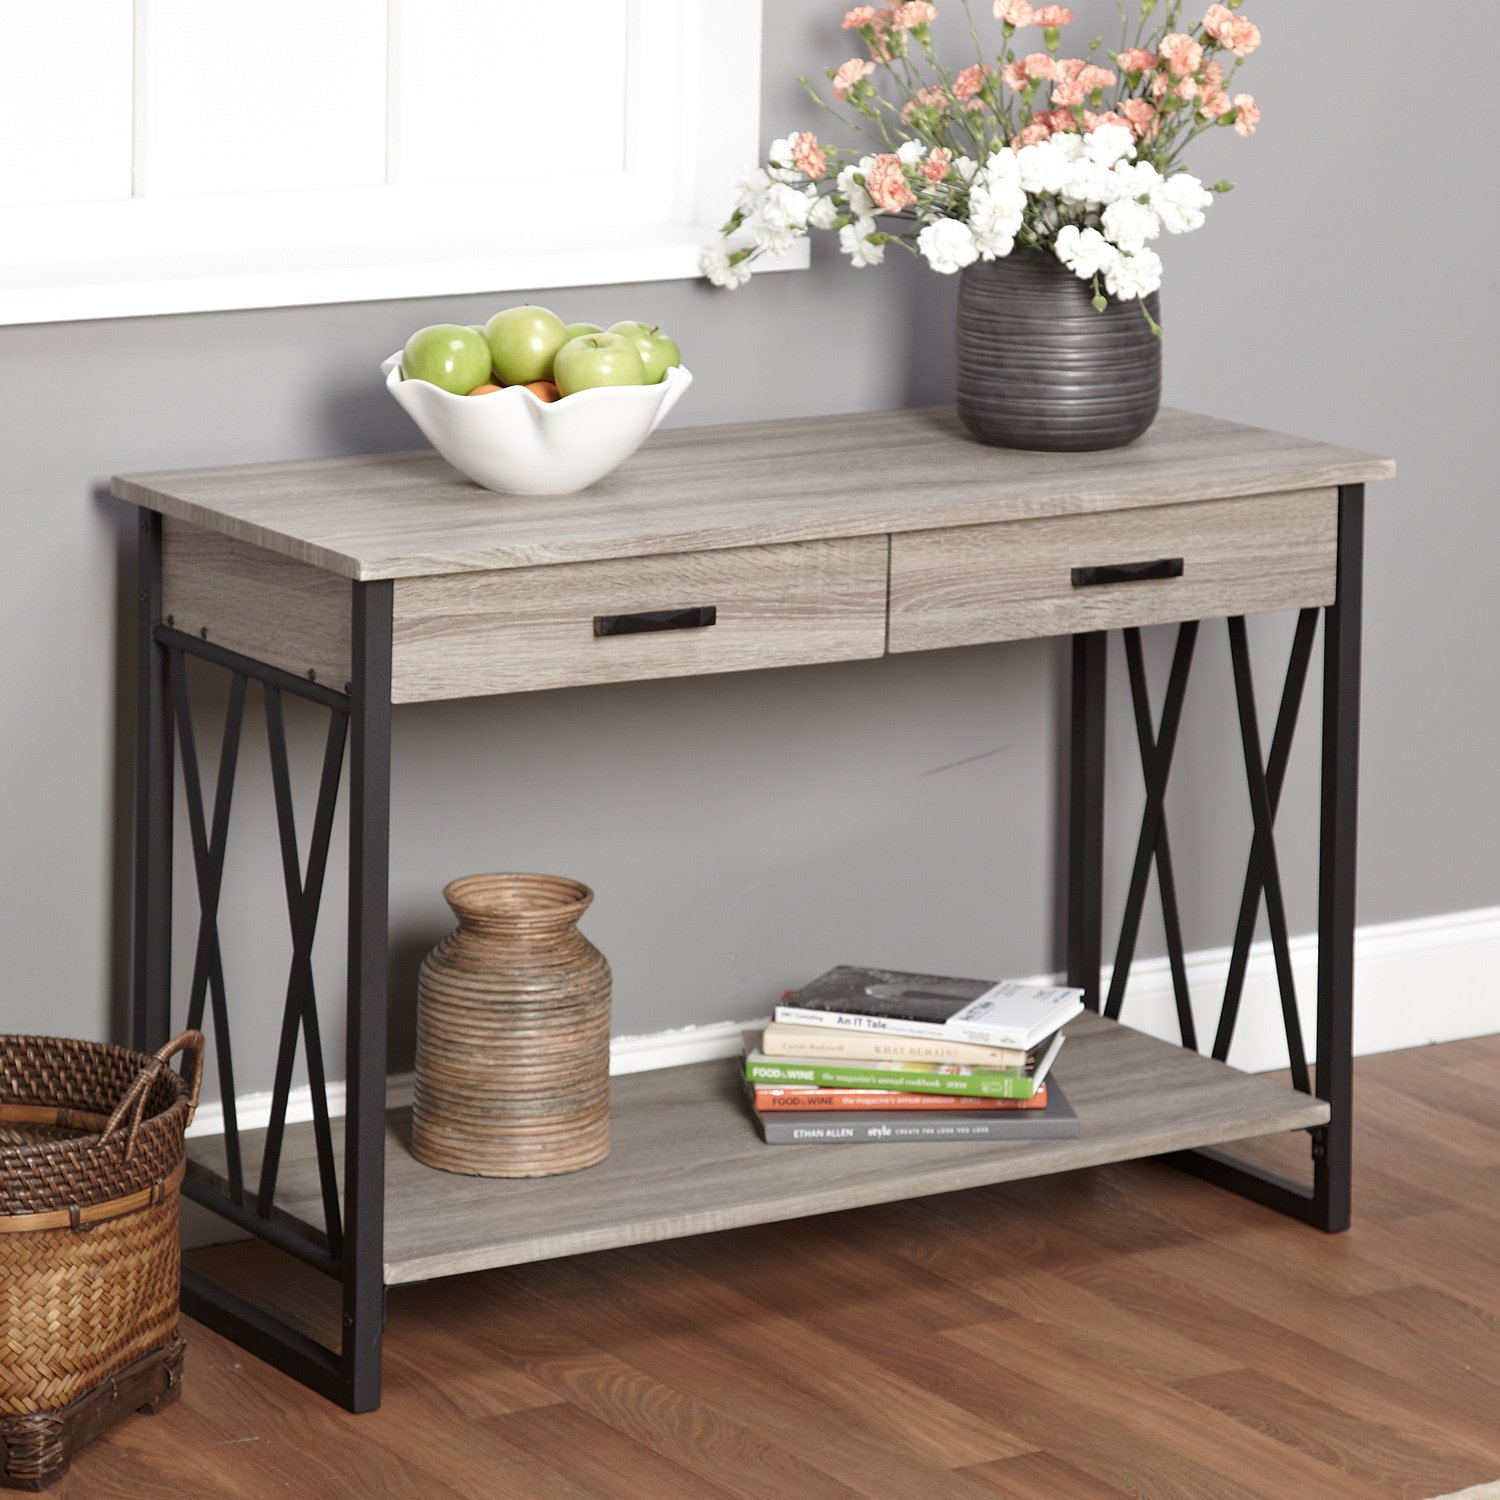 Foyer Room Furniture : Console sofa table living home furniture decor room